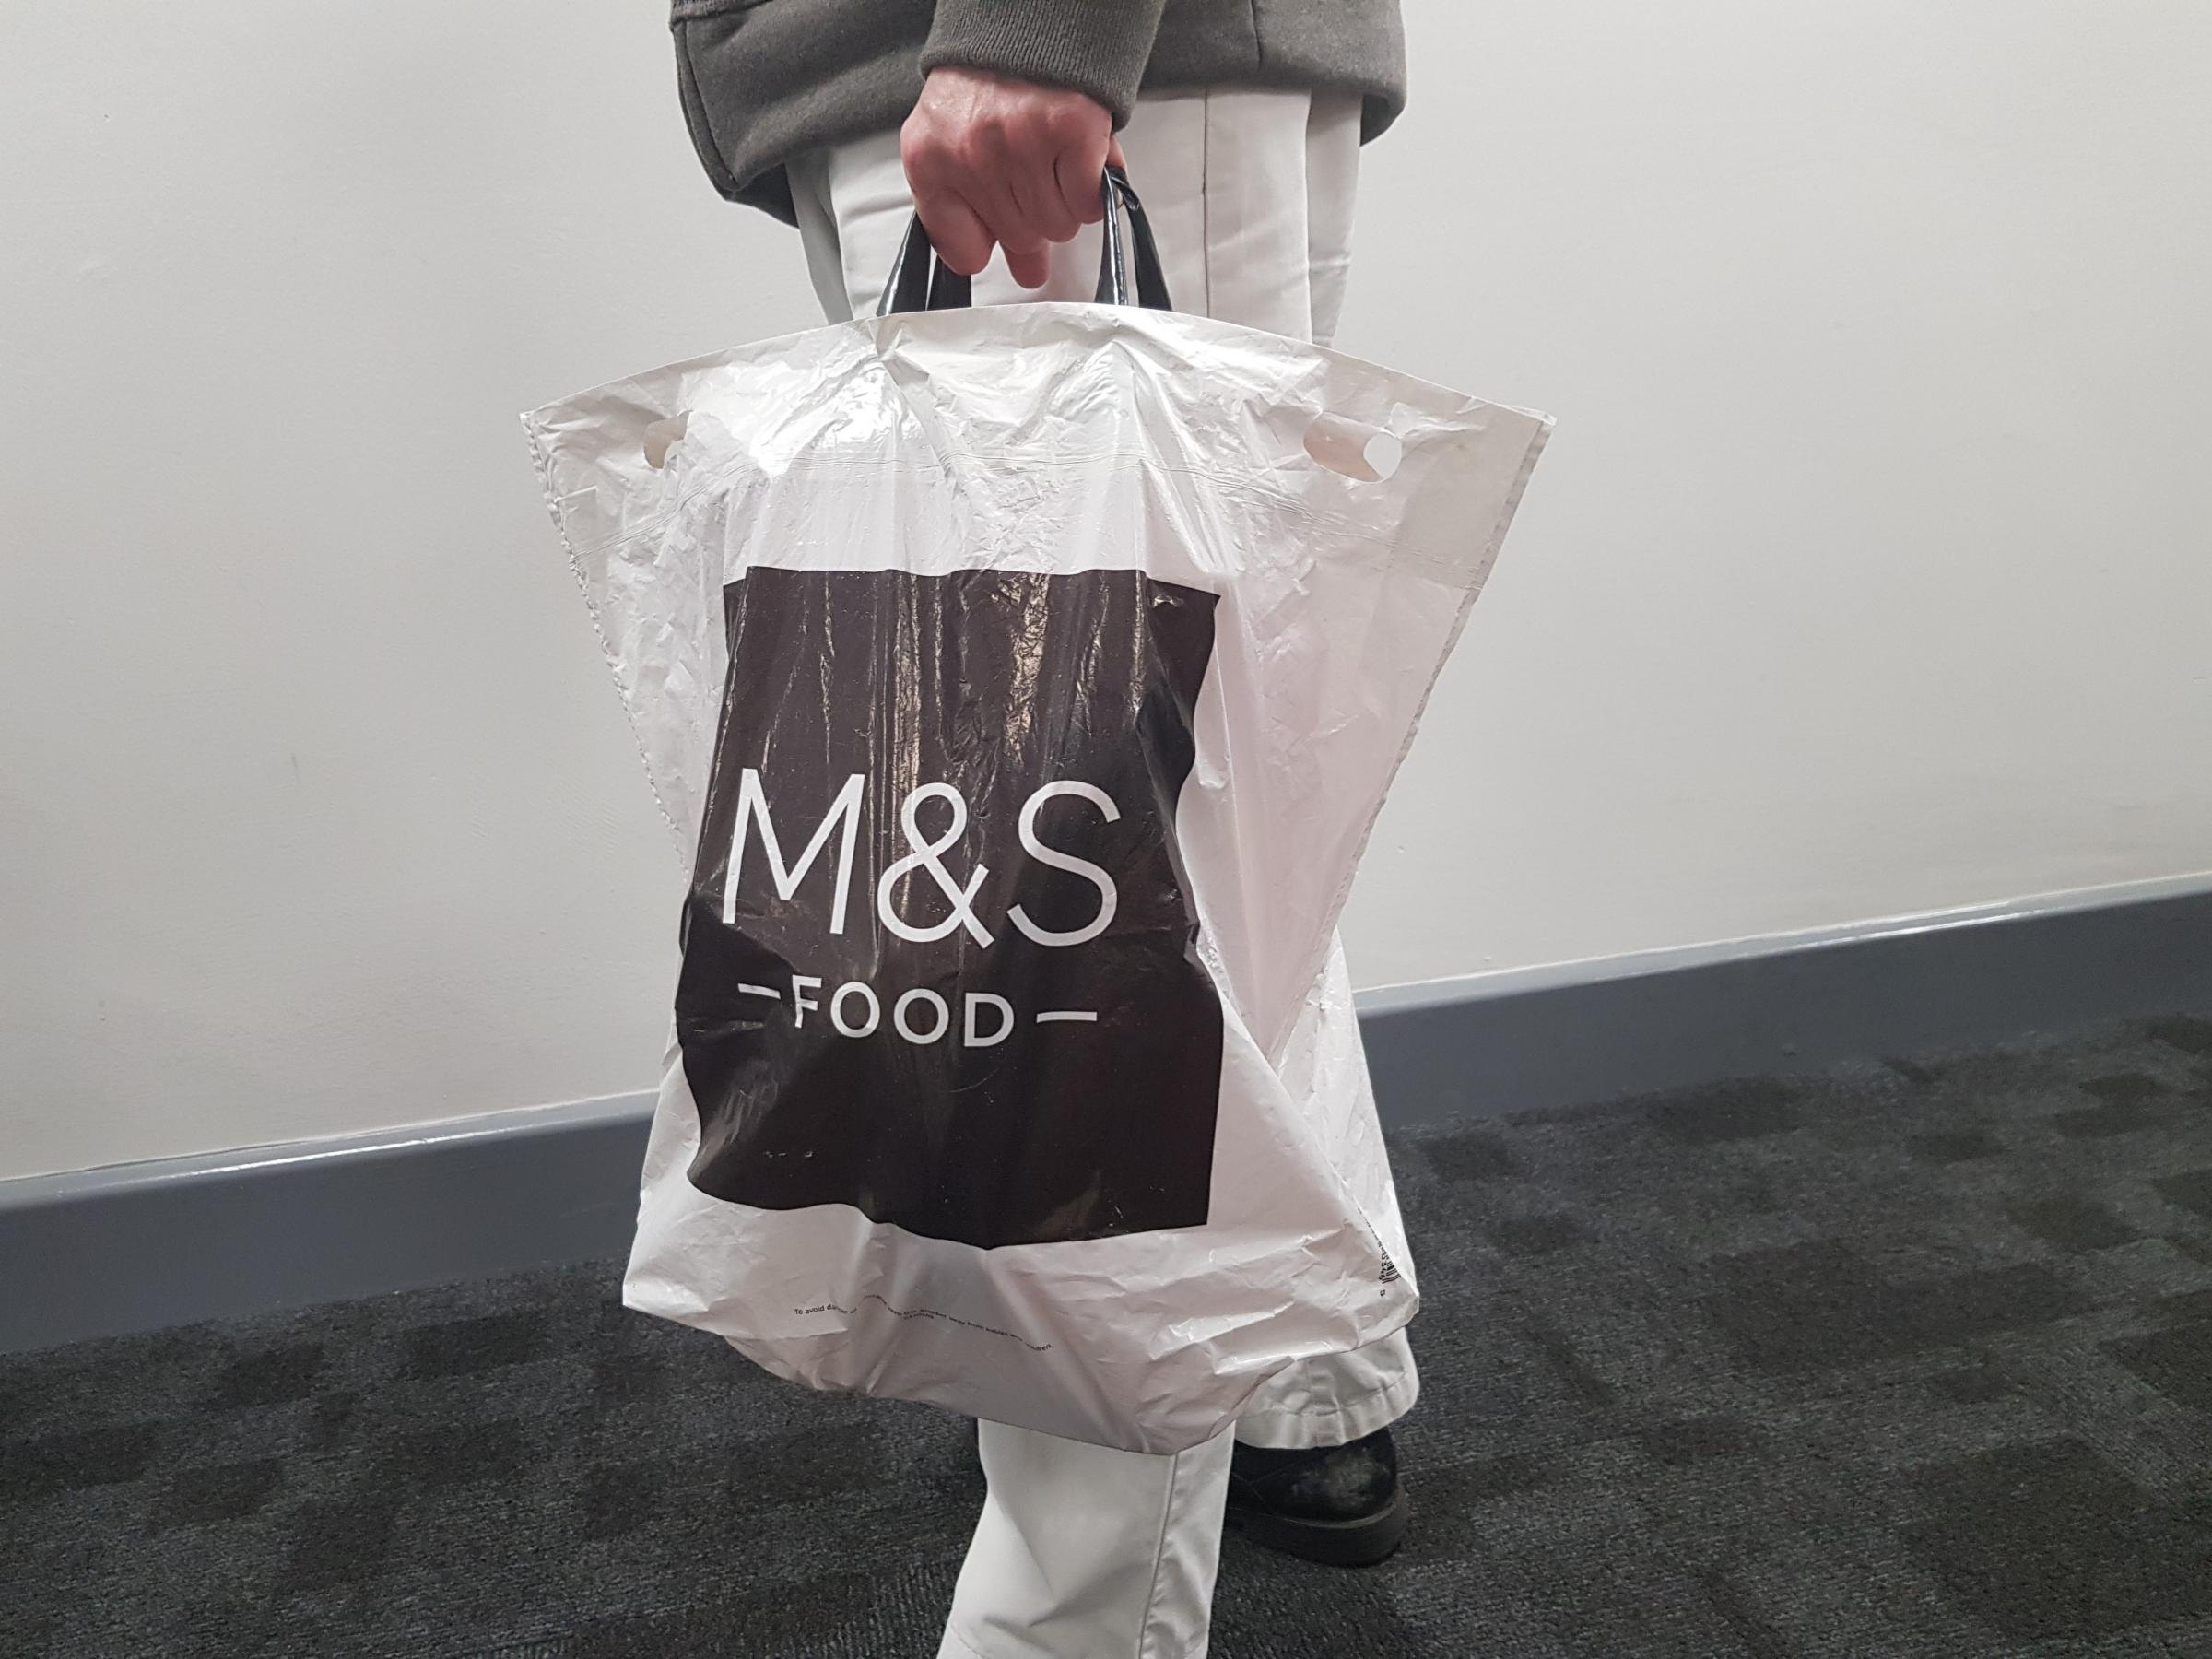 Marks & Spencer carrier bag contained stolen food worth £300